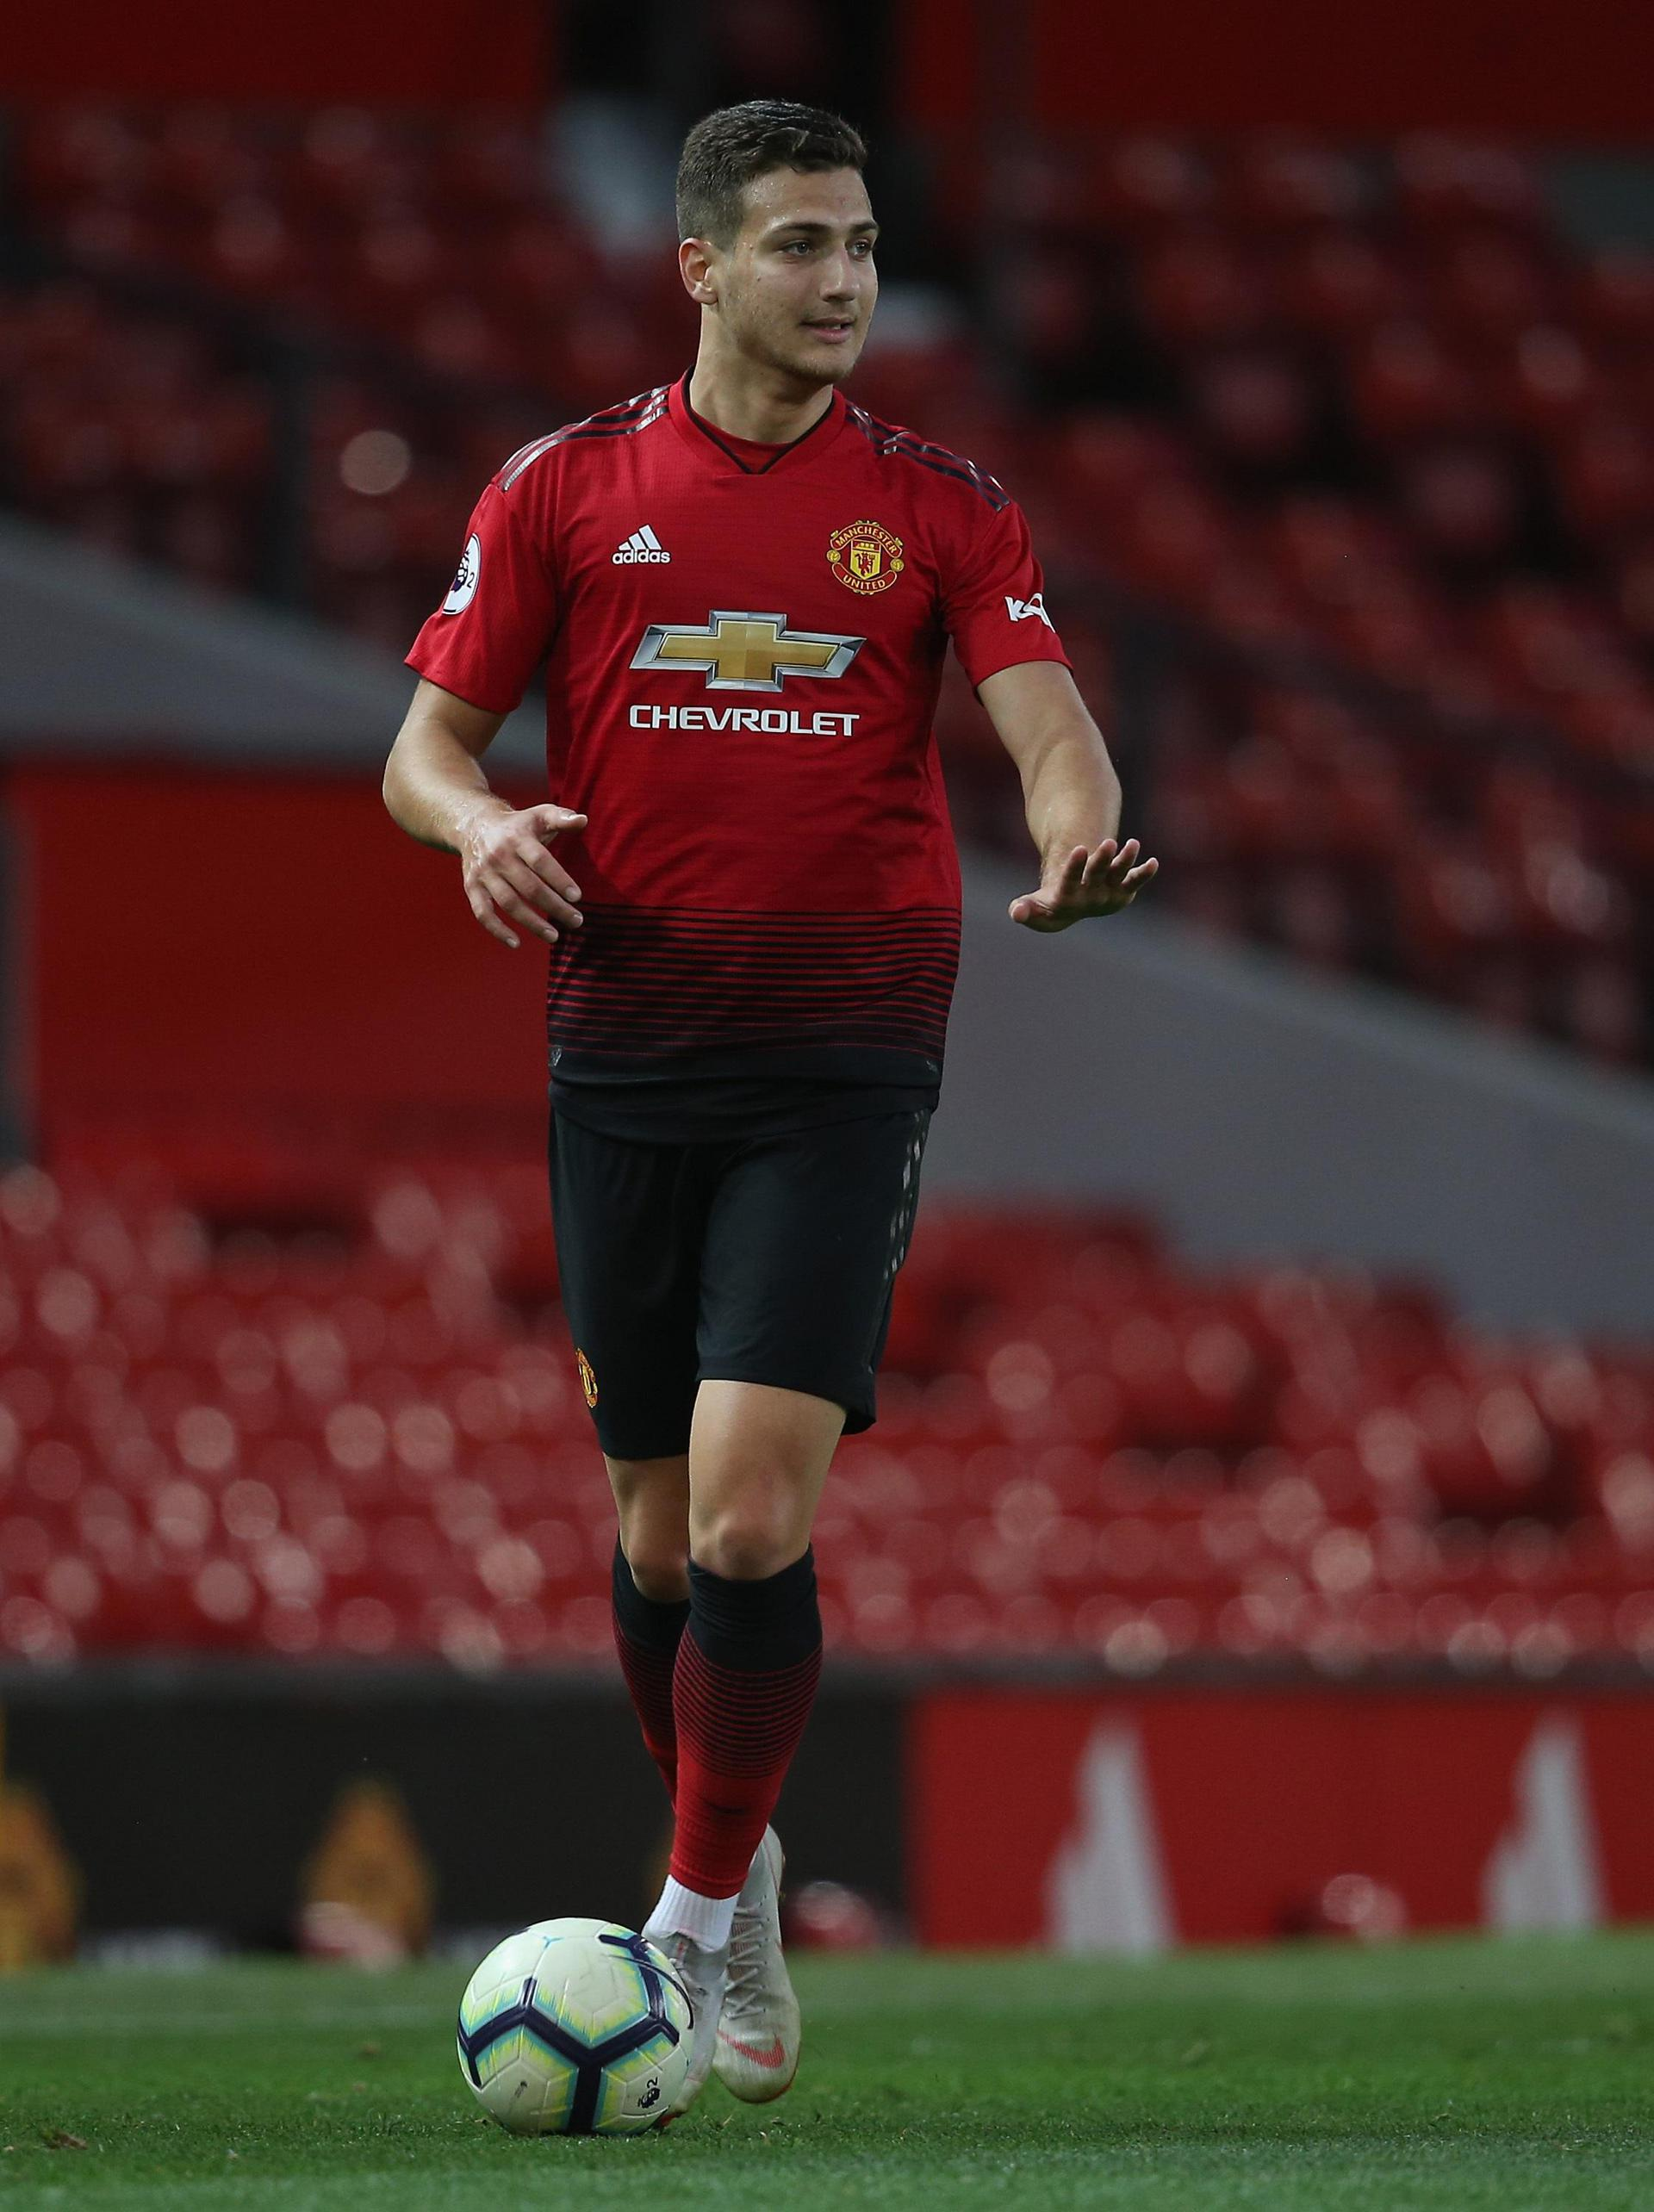 Diogo Dalot in action for the Under-23s.